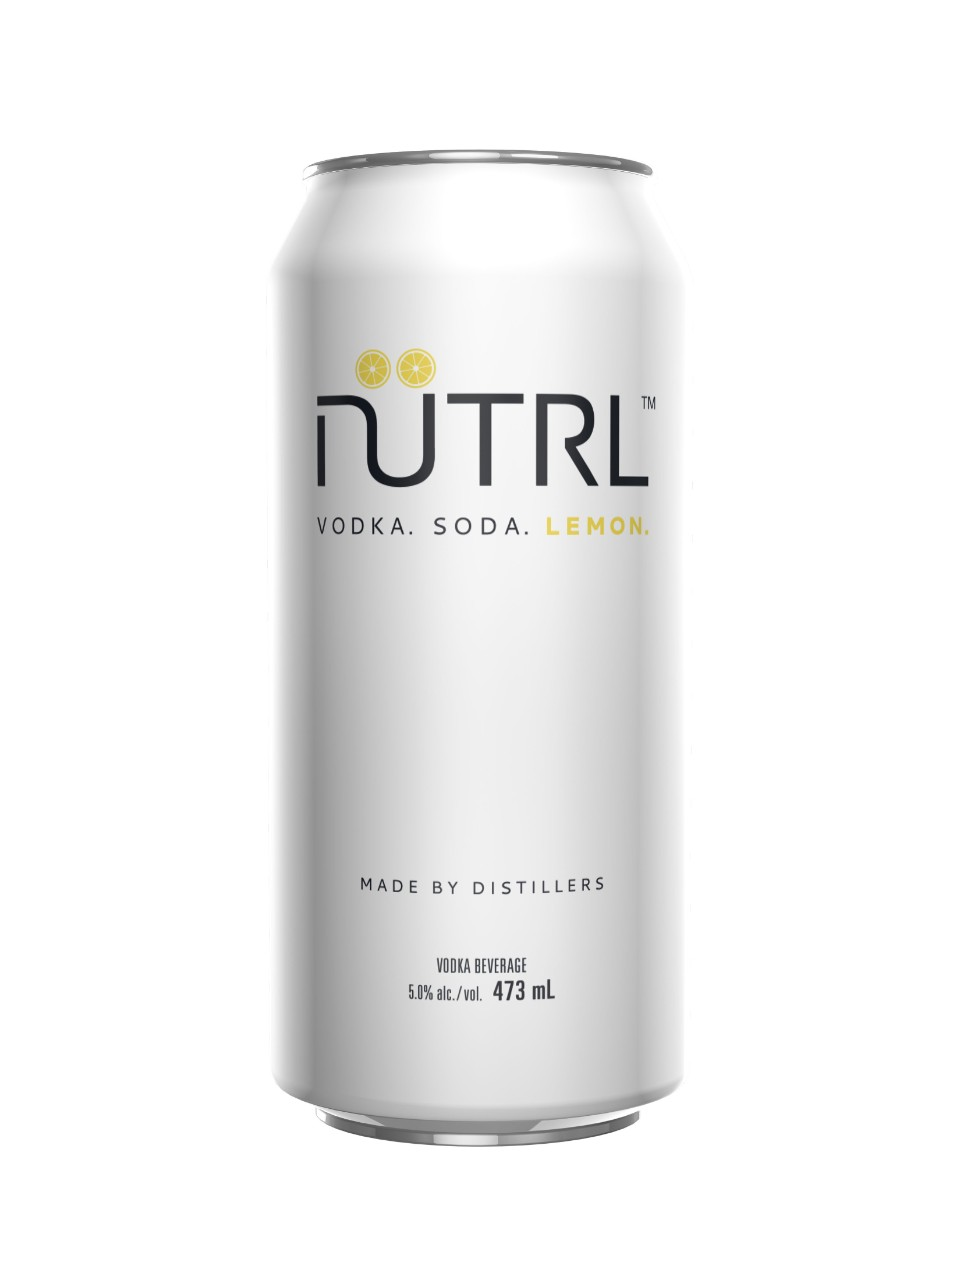 Nutrl Vodka Soda Lemon from LCBO